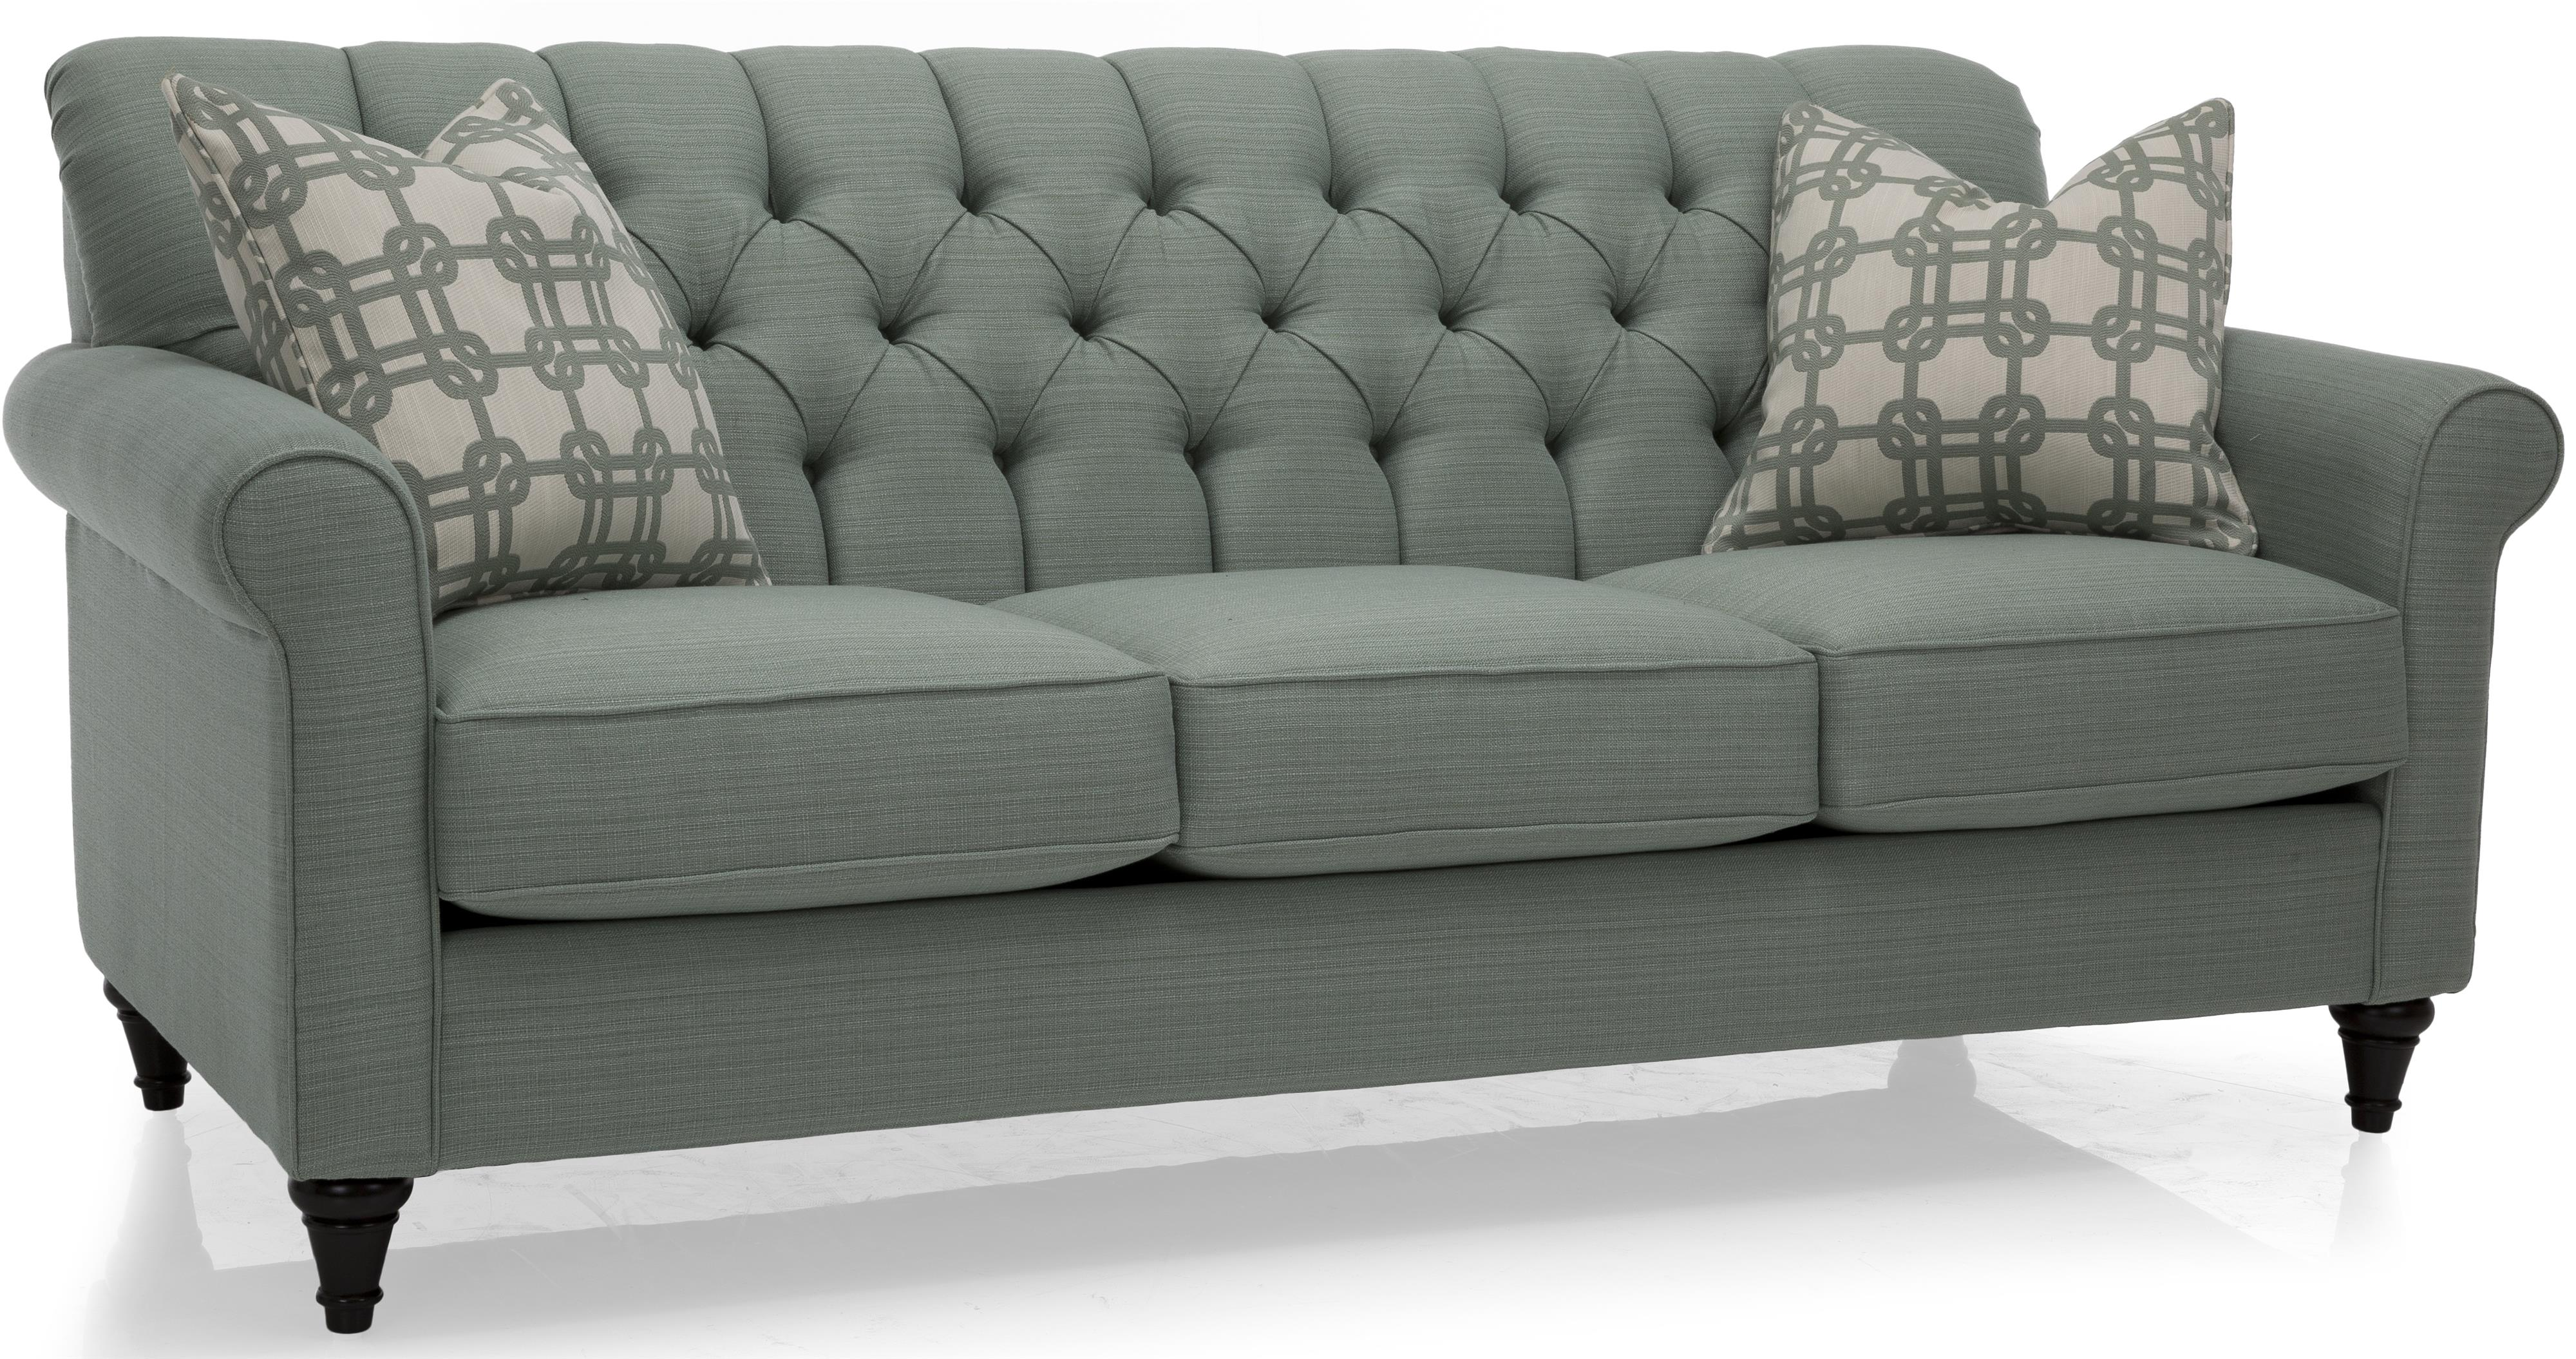 2478 Sofa by Decor-Rest at Reid's Furniture